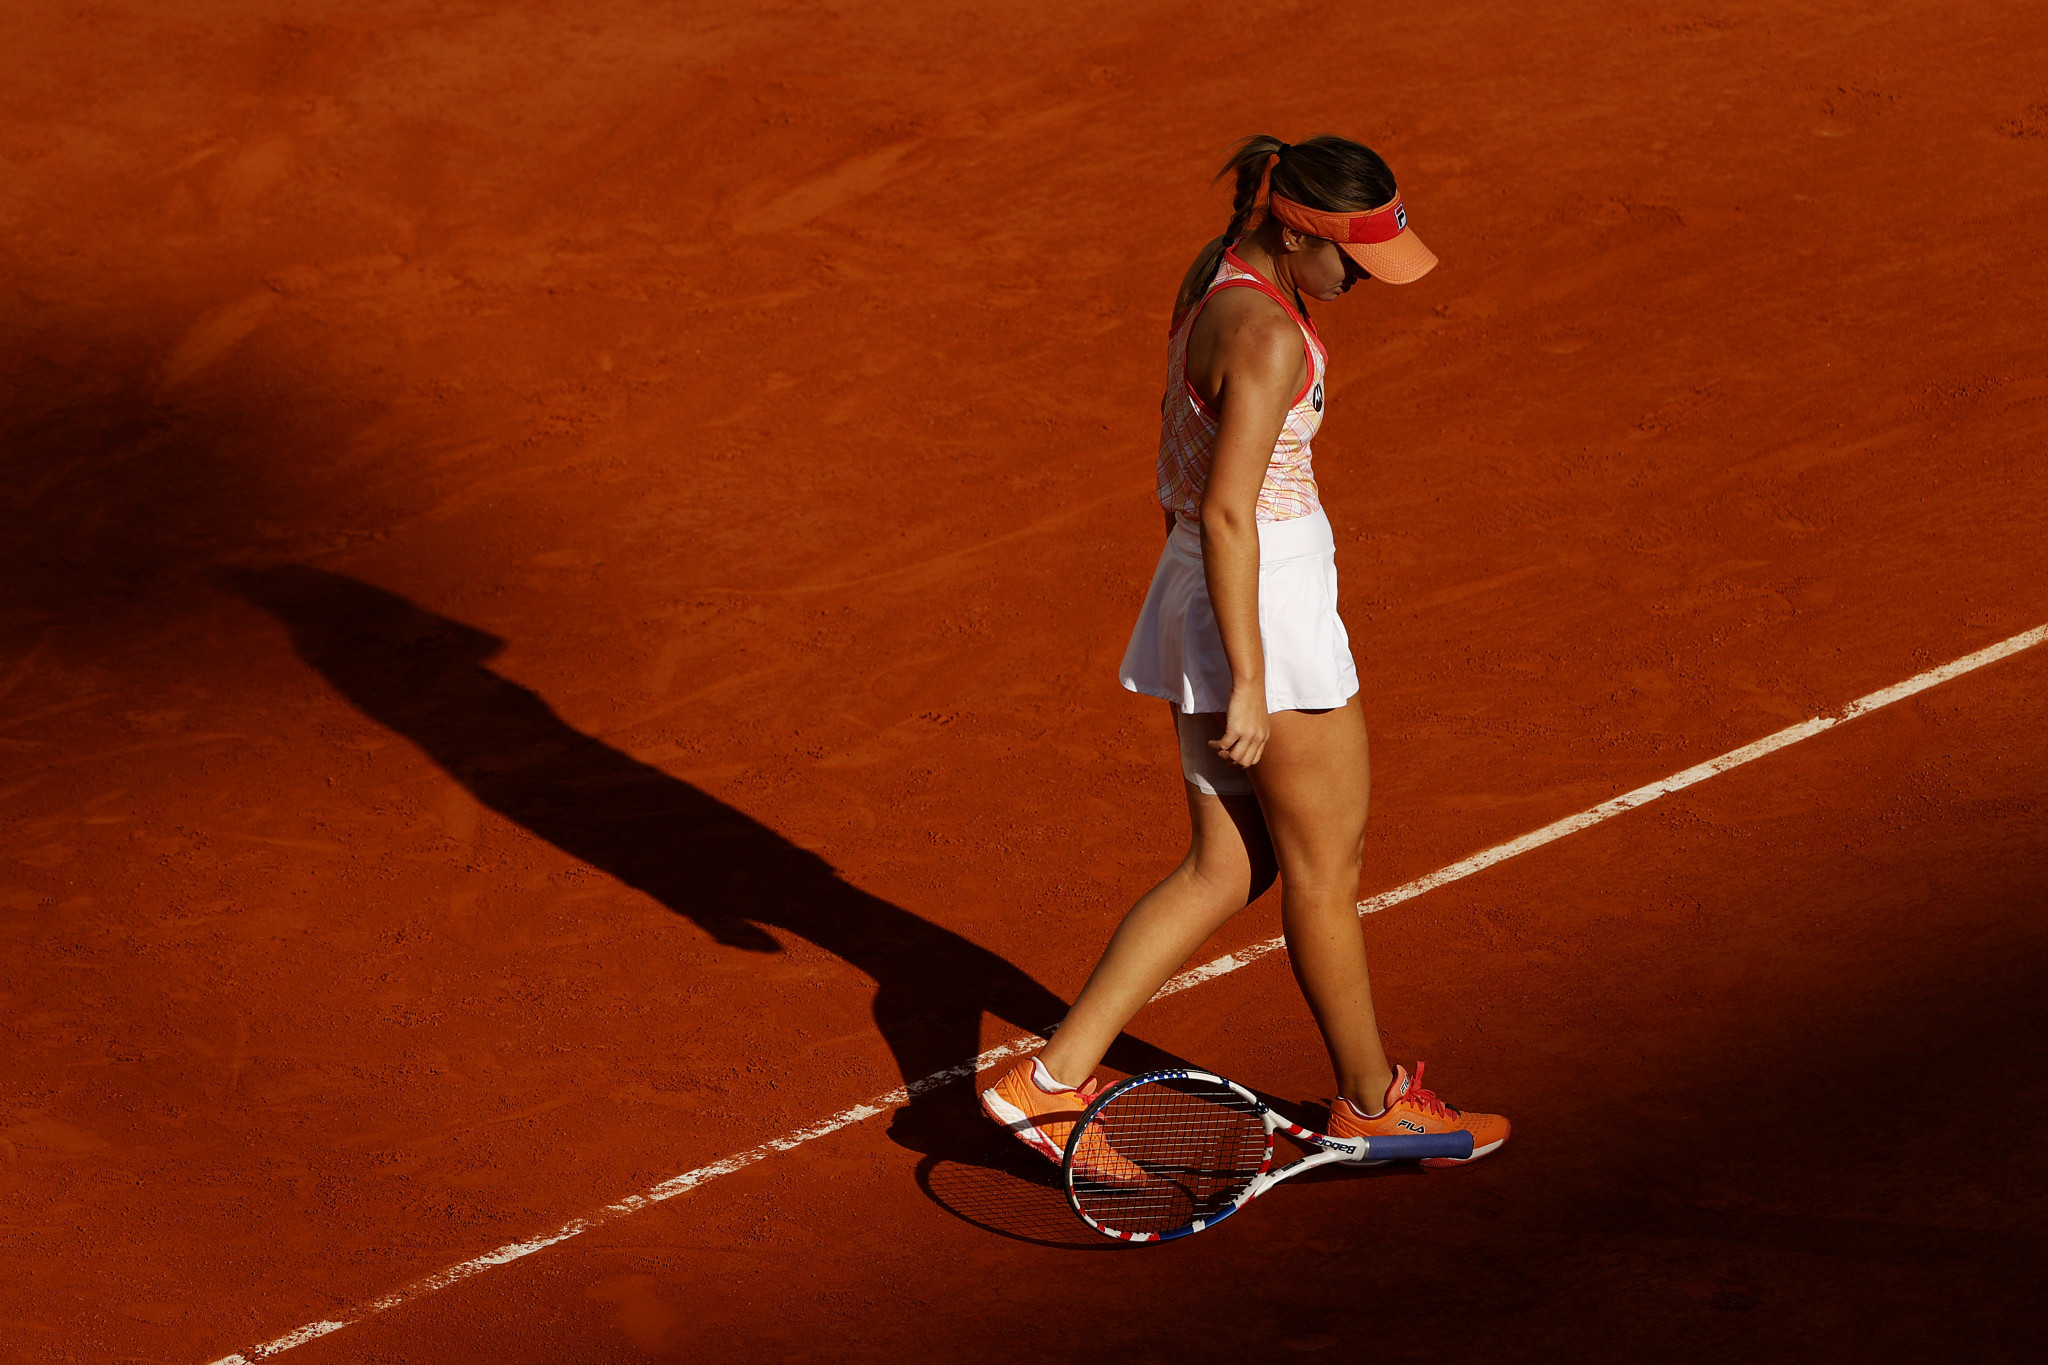 Kenin cuts a frustrated figure as she drops her racket ©Getty Images